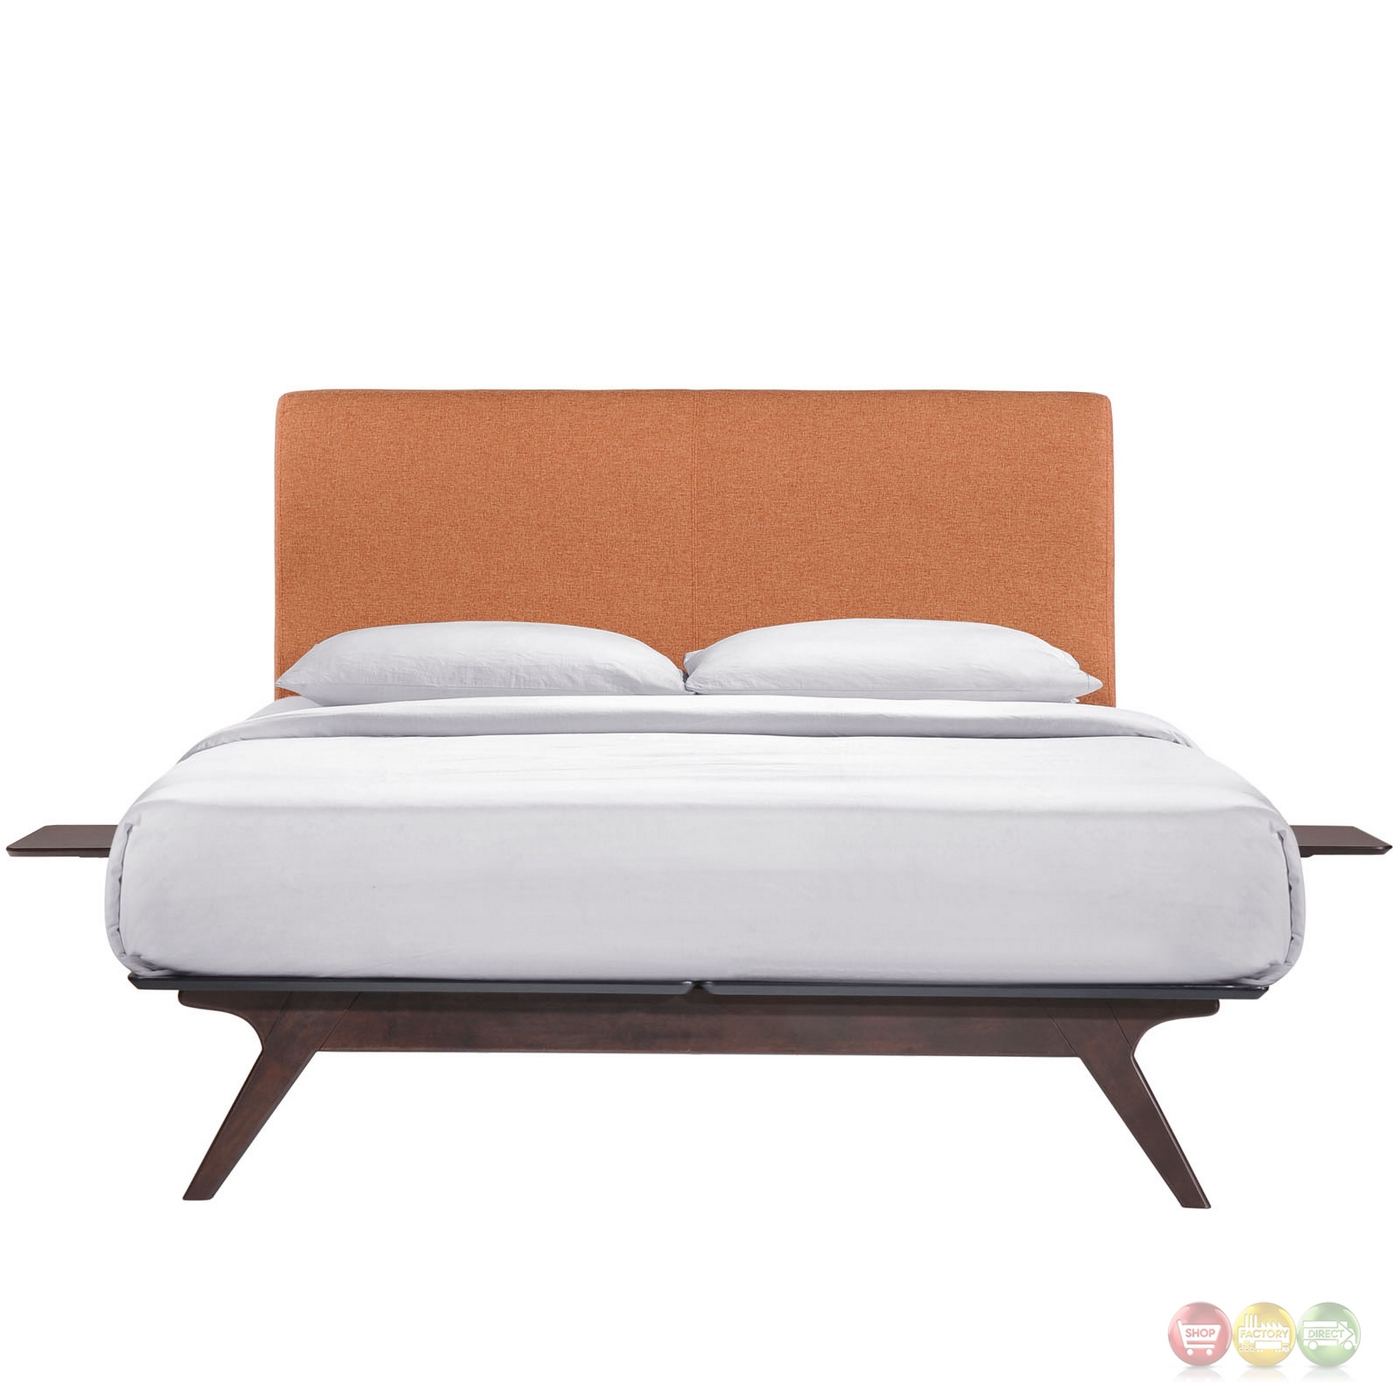 Tracy mid century upholstered king platform bed with for Platform bed